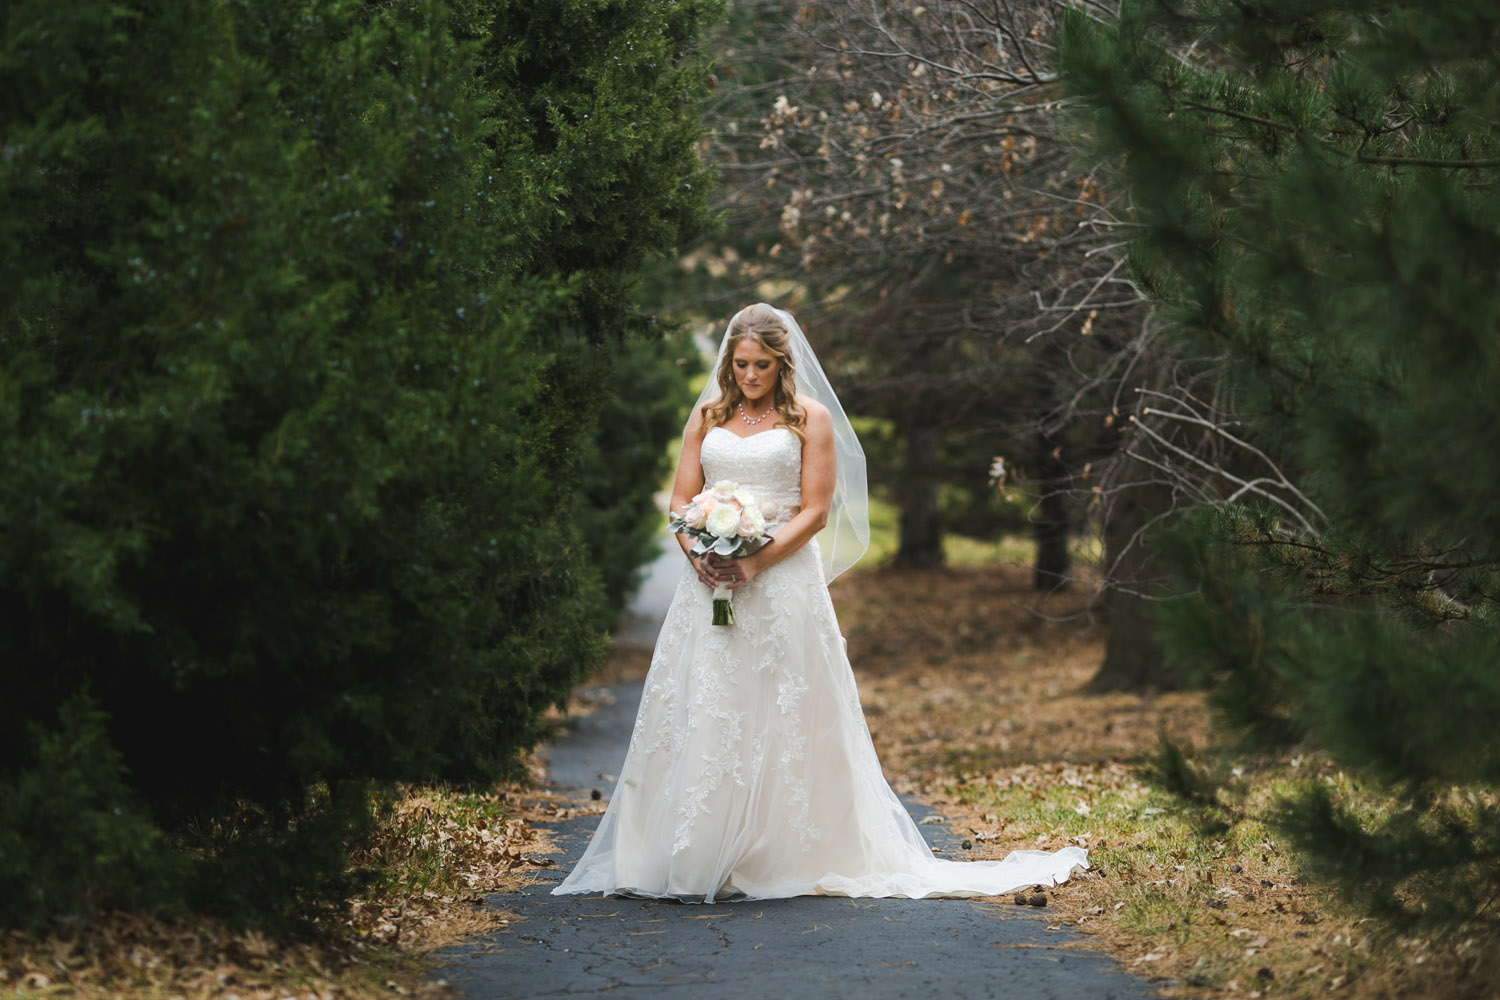 Bridal portrait photography Olathe, Kansas. Wedding photographer Renee McDaniel Photography, Manhattan Kansas